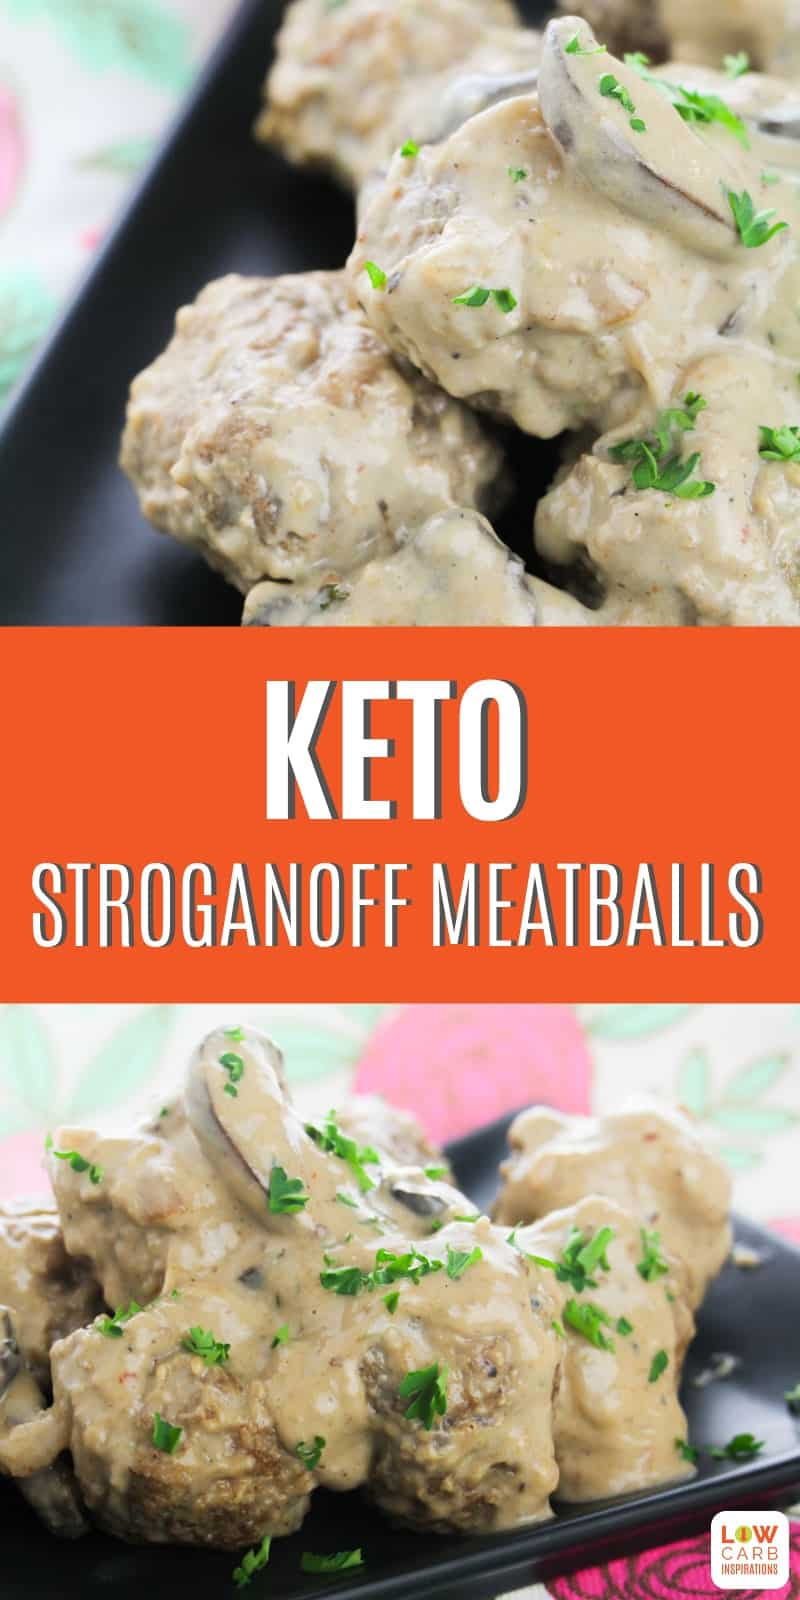 This keto stroganoff meatballs recipe is amazing! You are going to love the flavors and how easy it is to make these for the keto diet.